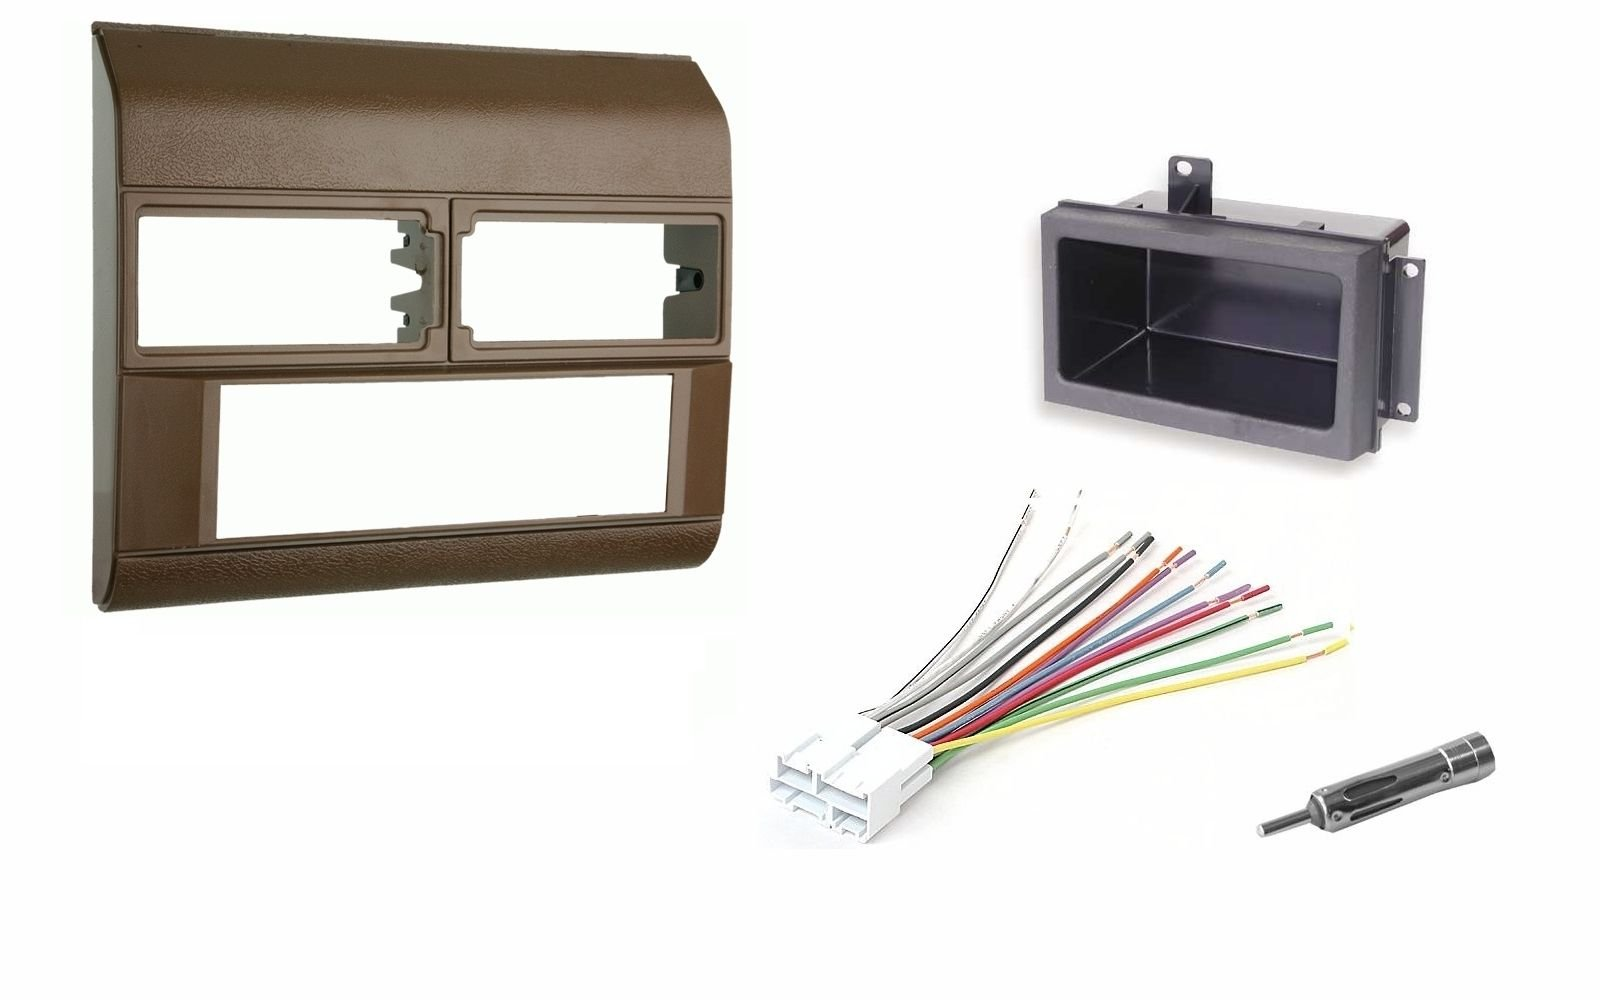 Beige Radio Stereo Dash Kit w/Wire Harness+Pocket+Antenna Adapter Fits Chevy Pickup Truck 88-94